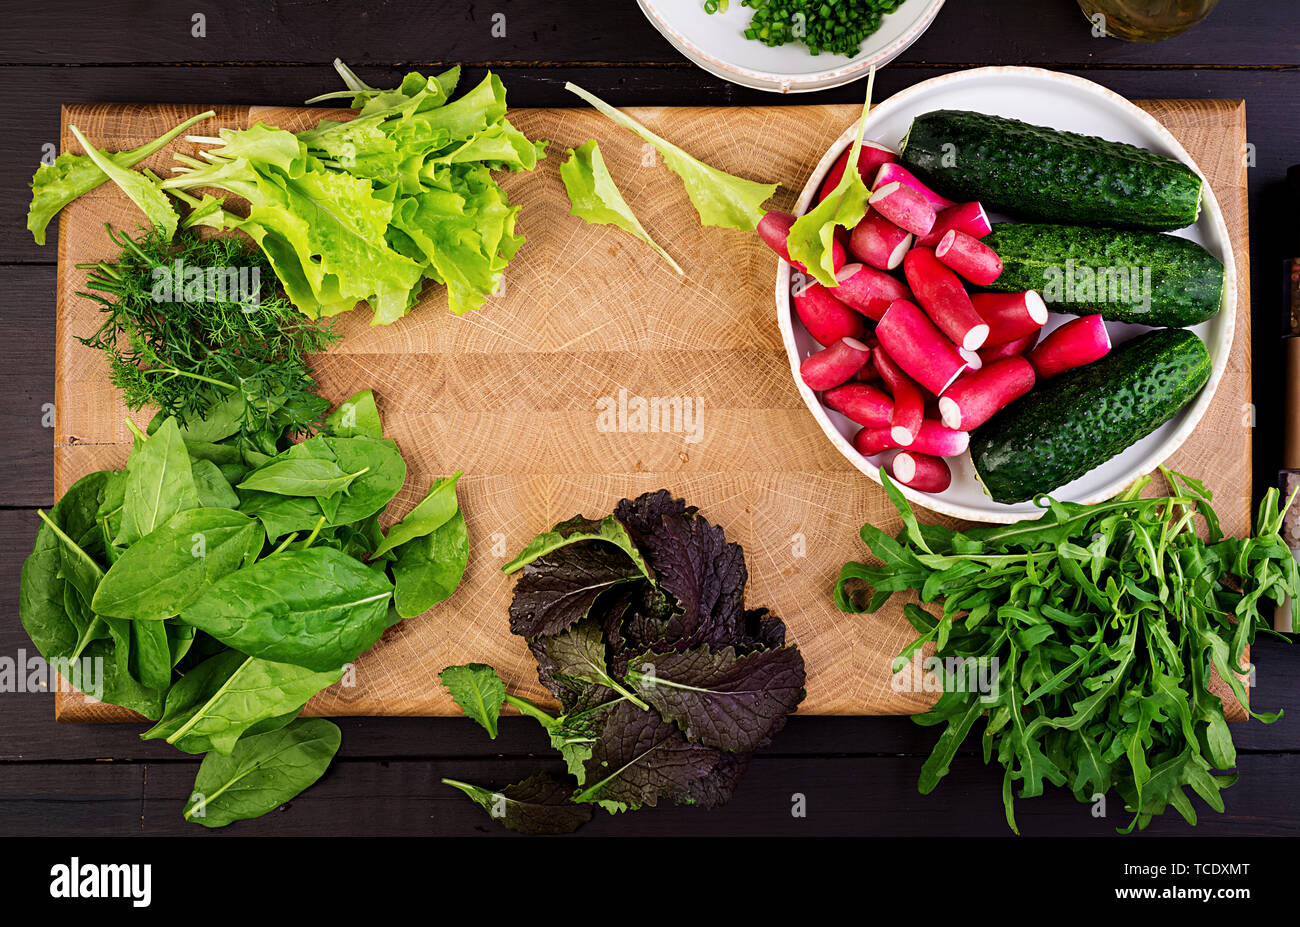 Ingredients for fresh salad of cucumbers, radishes and herbs. Flat lay. Top view Stock Photo